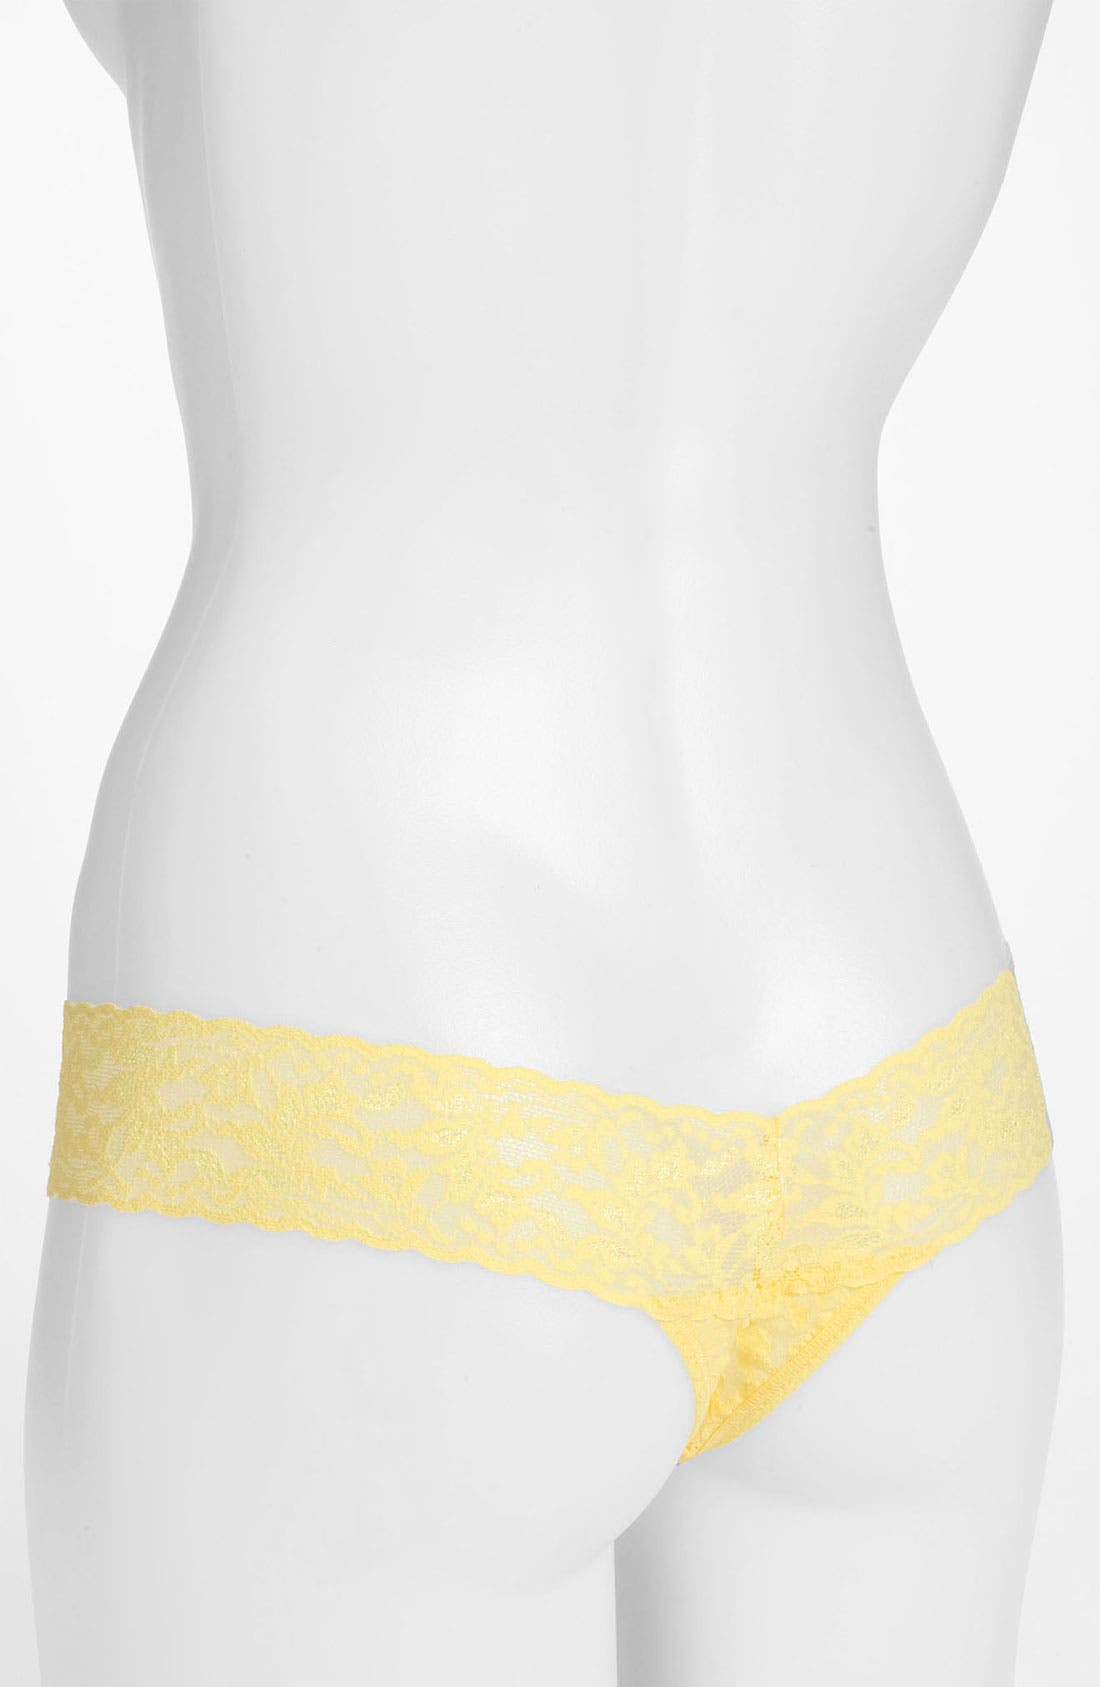 Alternate Image 2  - Hanky Panky 'Happy New Year' Embellished Low Rise Thong